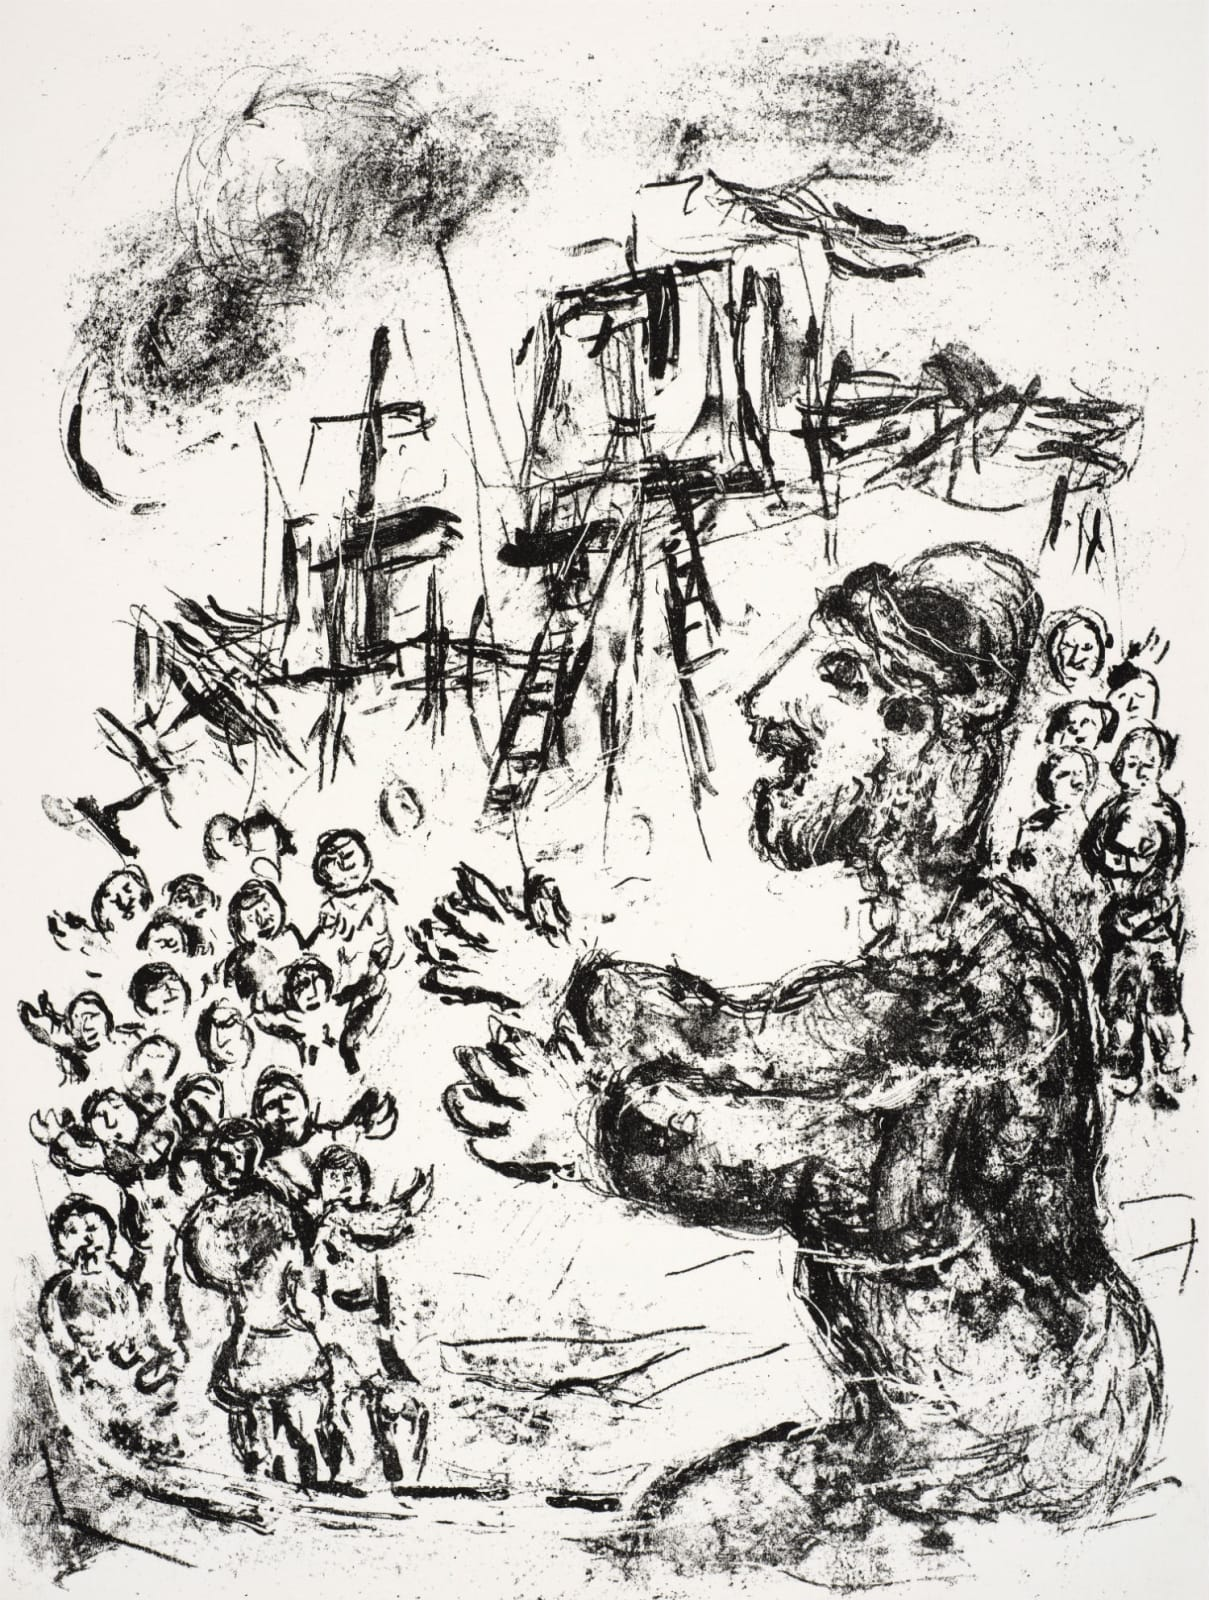 Marc Chagall (1887-1985) The Boatswain Greets the Passengers (Series: Shakespeare The Tempest) 1975 Lithograph 42.5 x 32.5 cm Ben Uri Collection © Marc Chagall estate To see and discover more about this artist click here